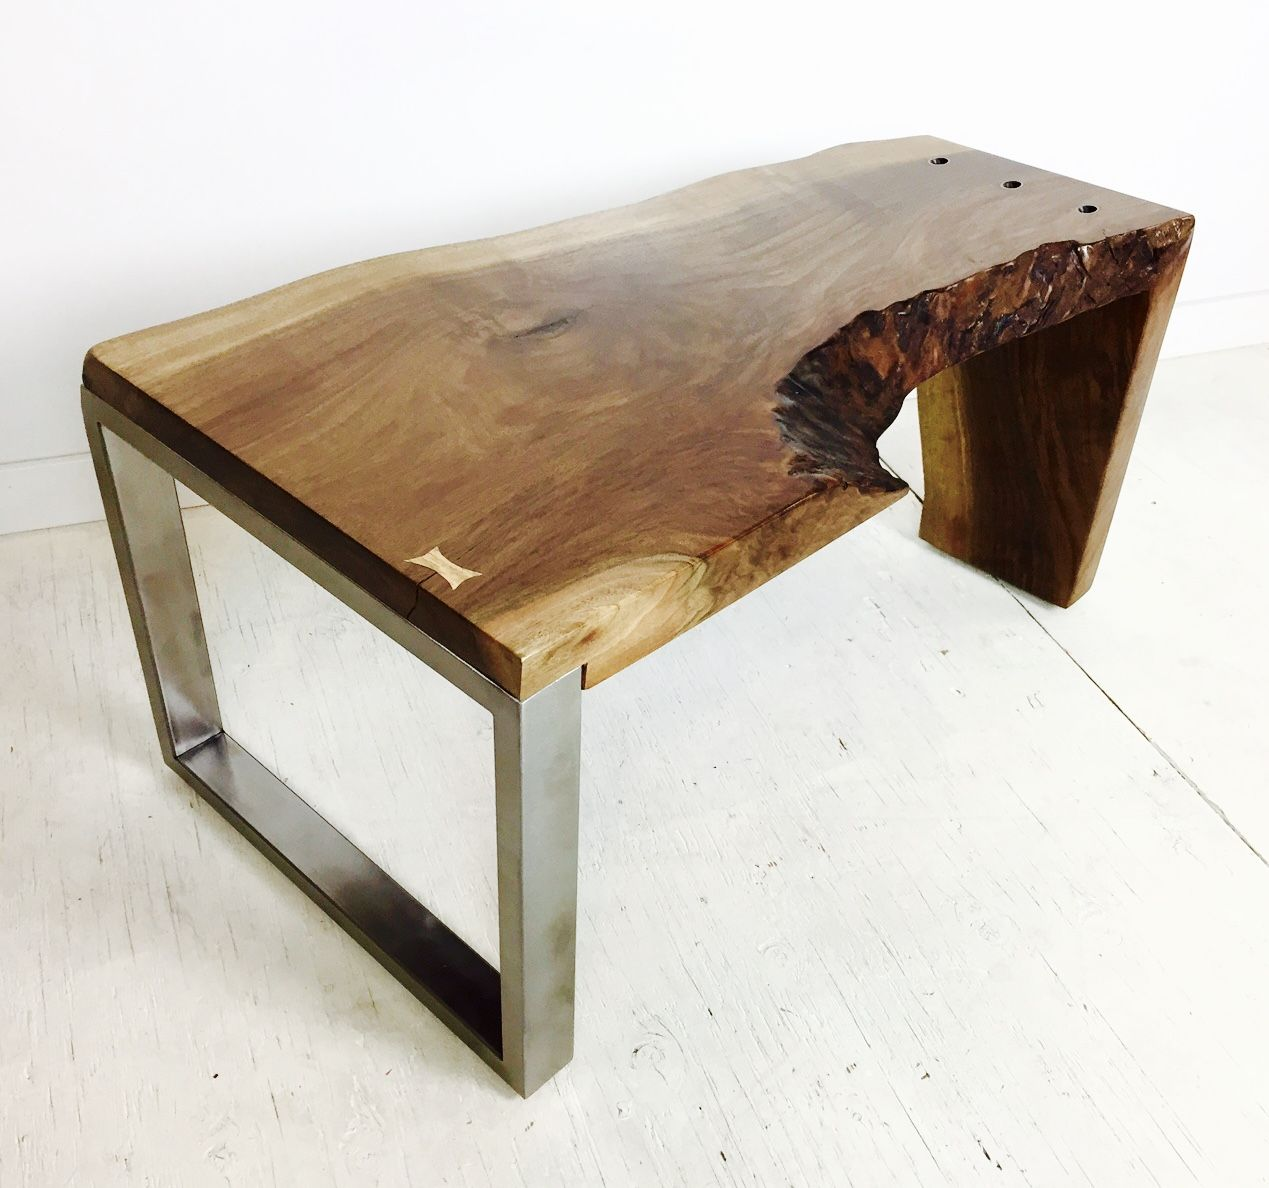 Live Edge Walnut Slab Waterfall Coffee Table Hand Crafted Furniture Steel Table Branch Furniture [ 1188 x 1269 Pixel ]